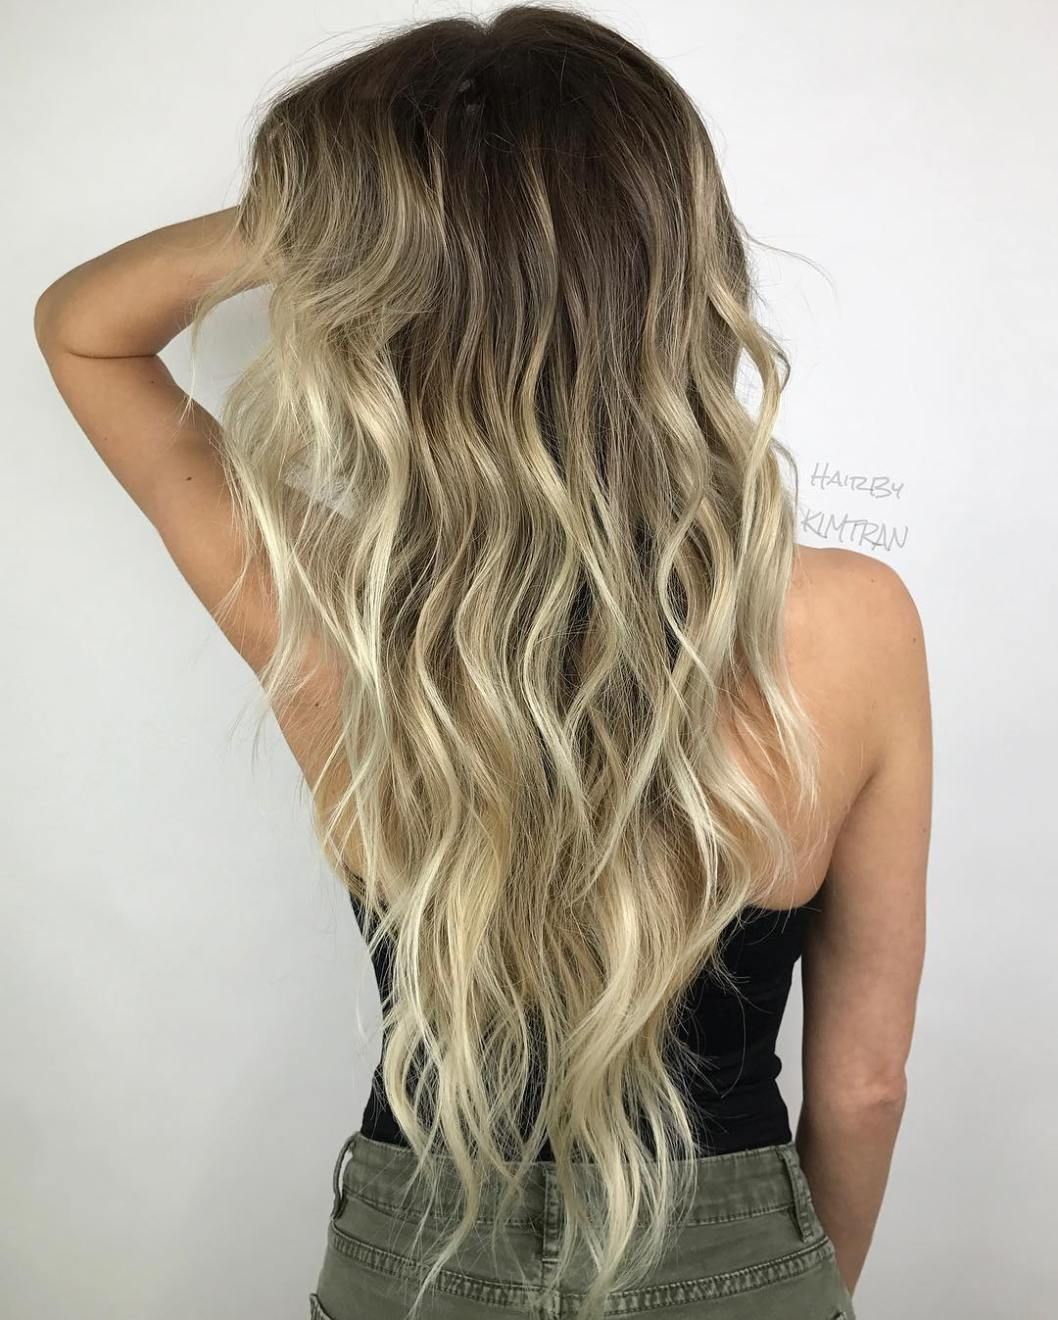 50 Top Haircuts For Long Thin Hair In 2020 Hair Adviser In 2020 Long Thin Hair Hairstyles For Thin Hair Long Fine Hair